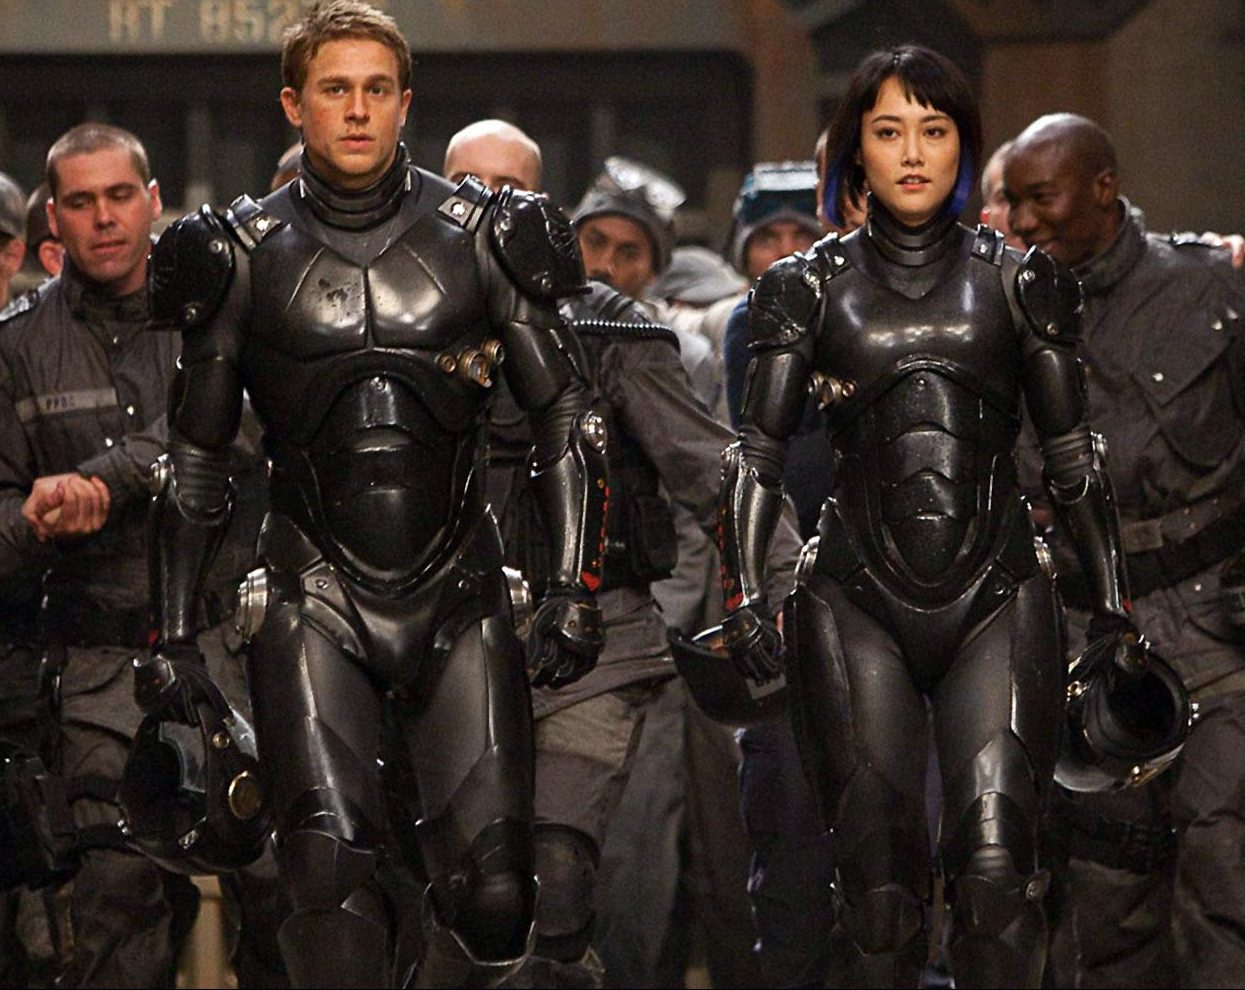 pacificrim1 e1605542441213 20 Films Set In Futures Past: What They Got Right (And Wrong) About The World We Live In